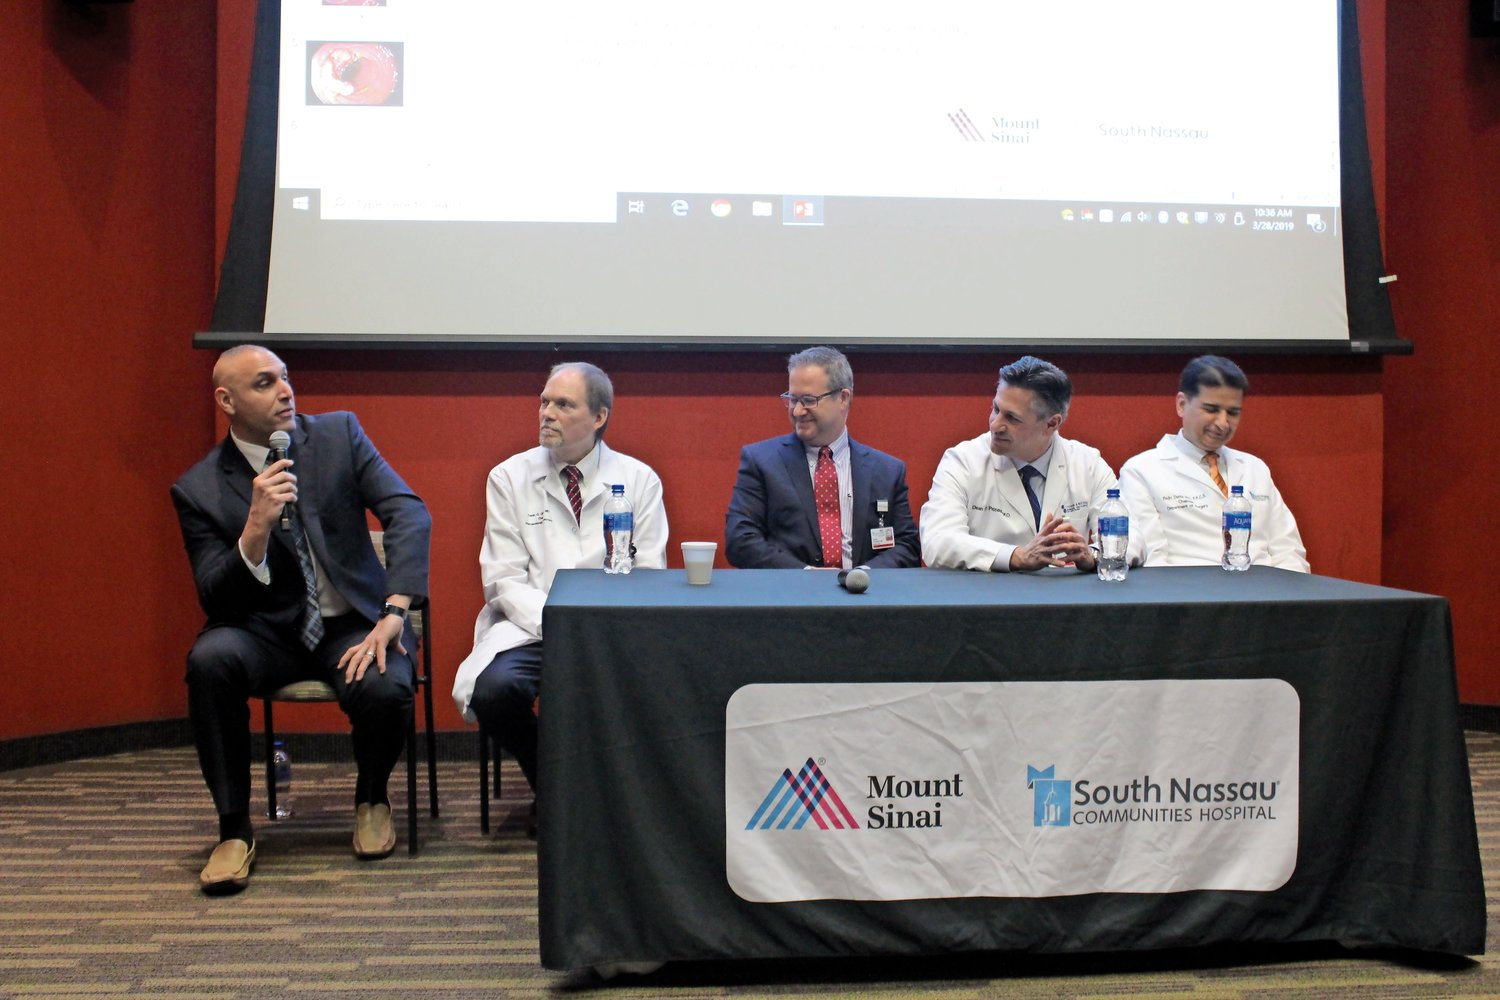 Merrick resident Eric Schrader, left, spoke about his experiences battling colon cancer. He was joined by Dr. Frank Gress, second from left, Dr. Frank Caliendo, Dr. Dean Pappas and Dr. Rajiv Datta, all of South Nassau Communities Hospital.